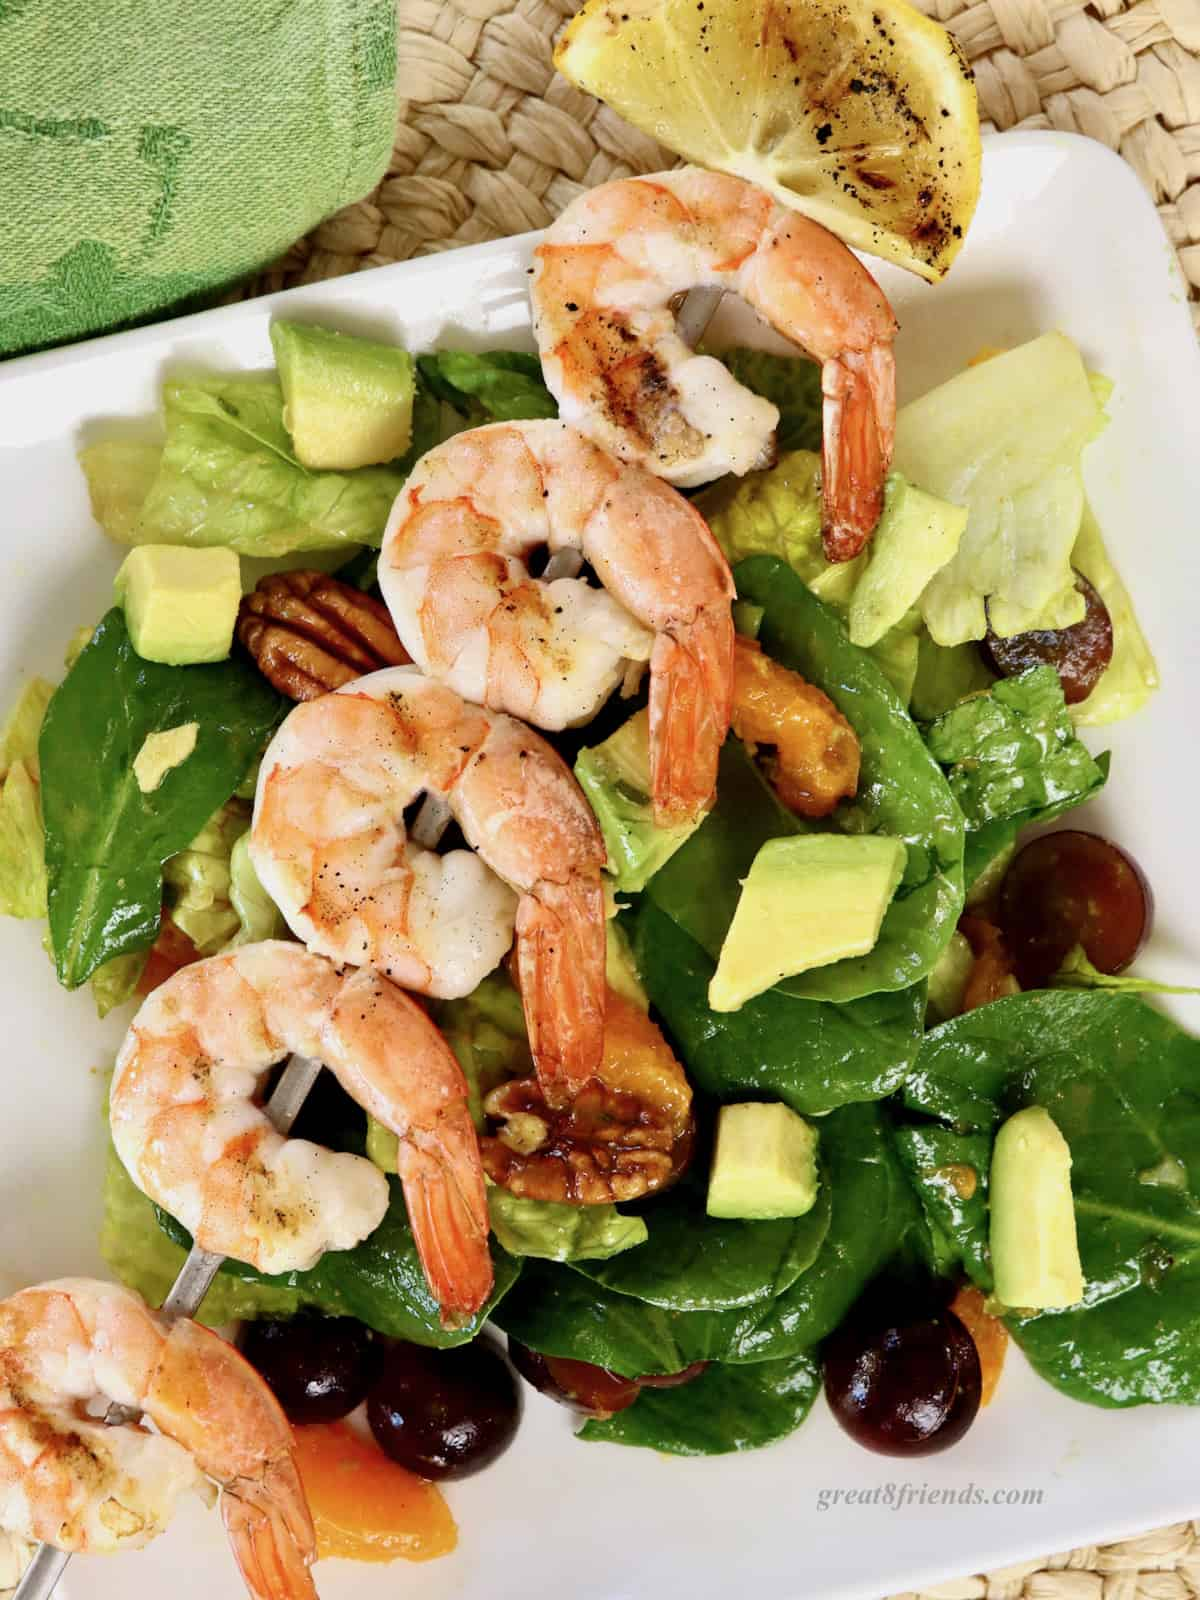 An overhead shot of a serving of salad with tangerine slices, pecans, grapes and avocados and a skewer of grilled shrimp on a square white plate, on a woven placemat.